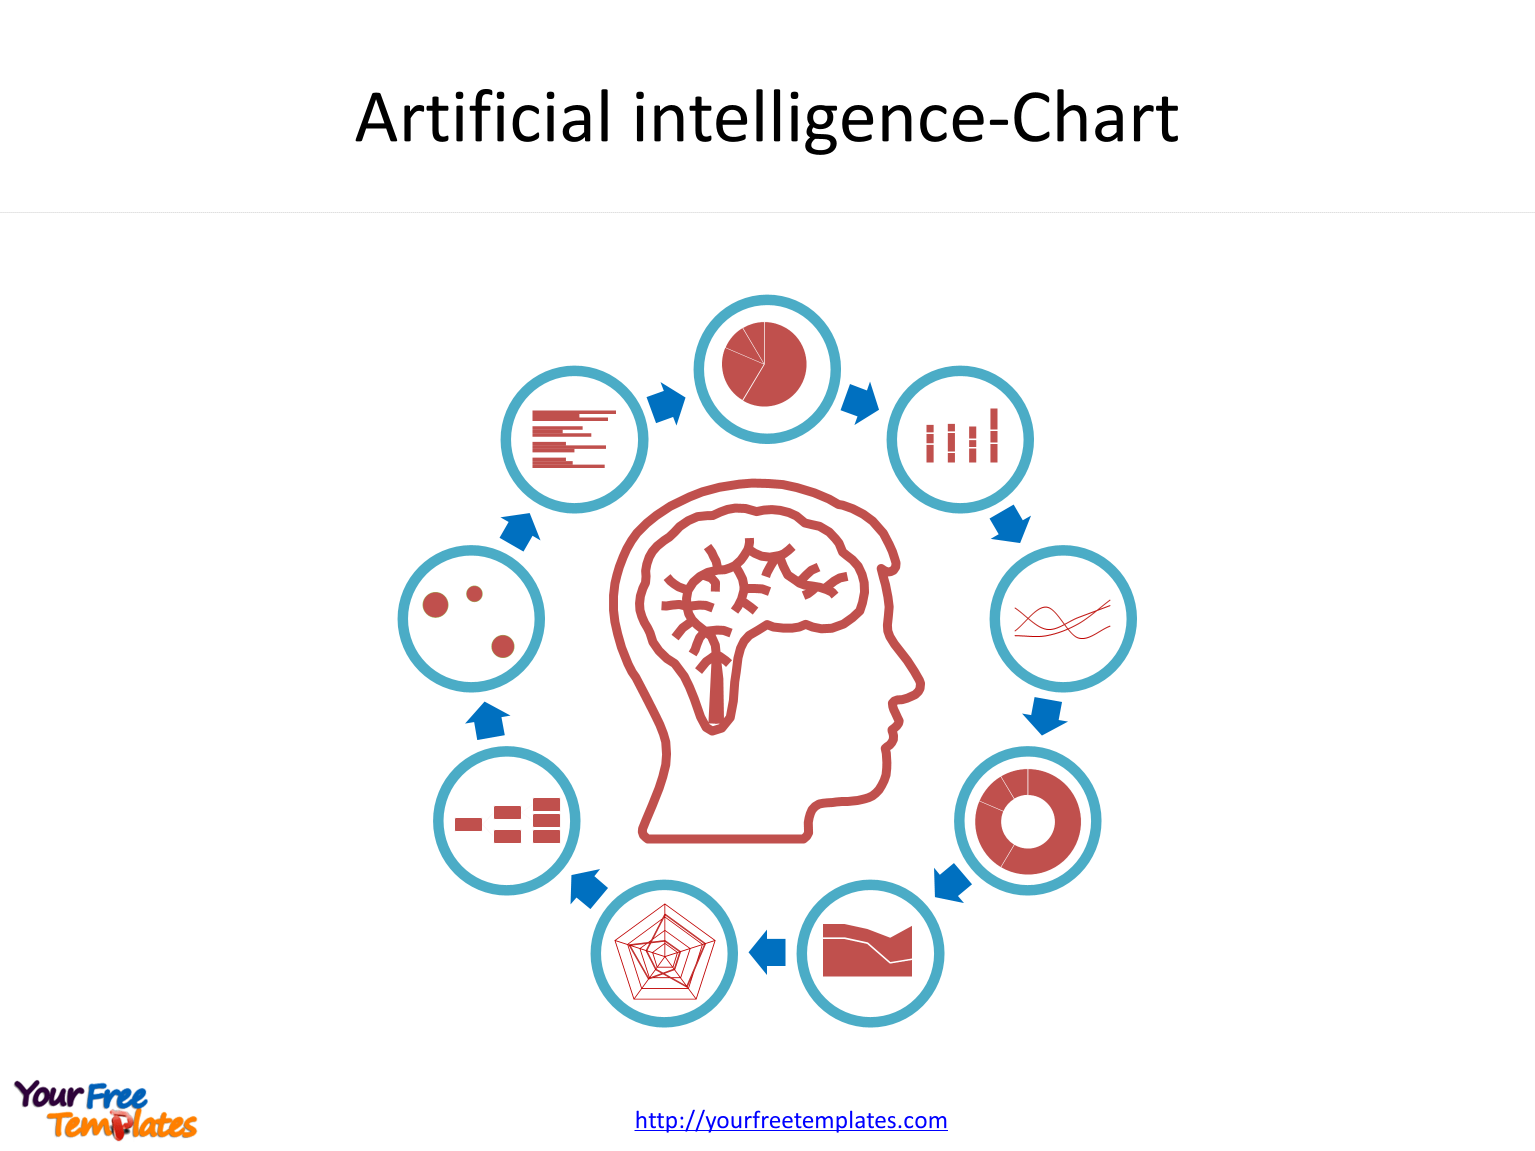 Artificial intelligence powerpoint templates diagram pinterest artificial intelligence powerpoint templates toneelgroepblik Images